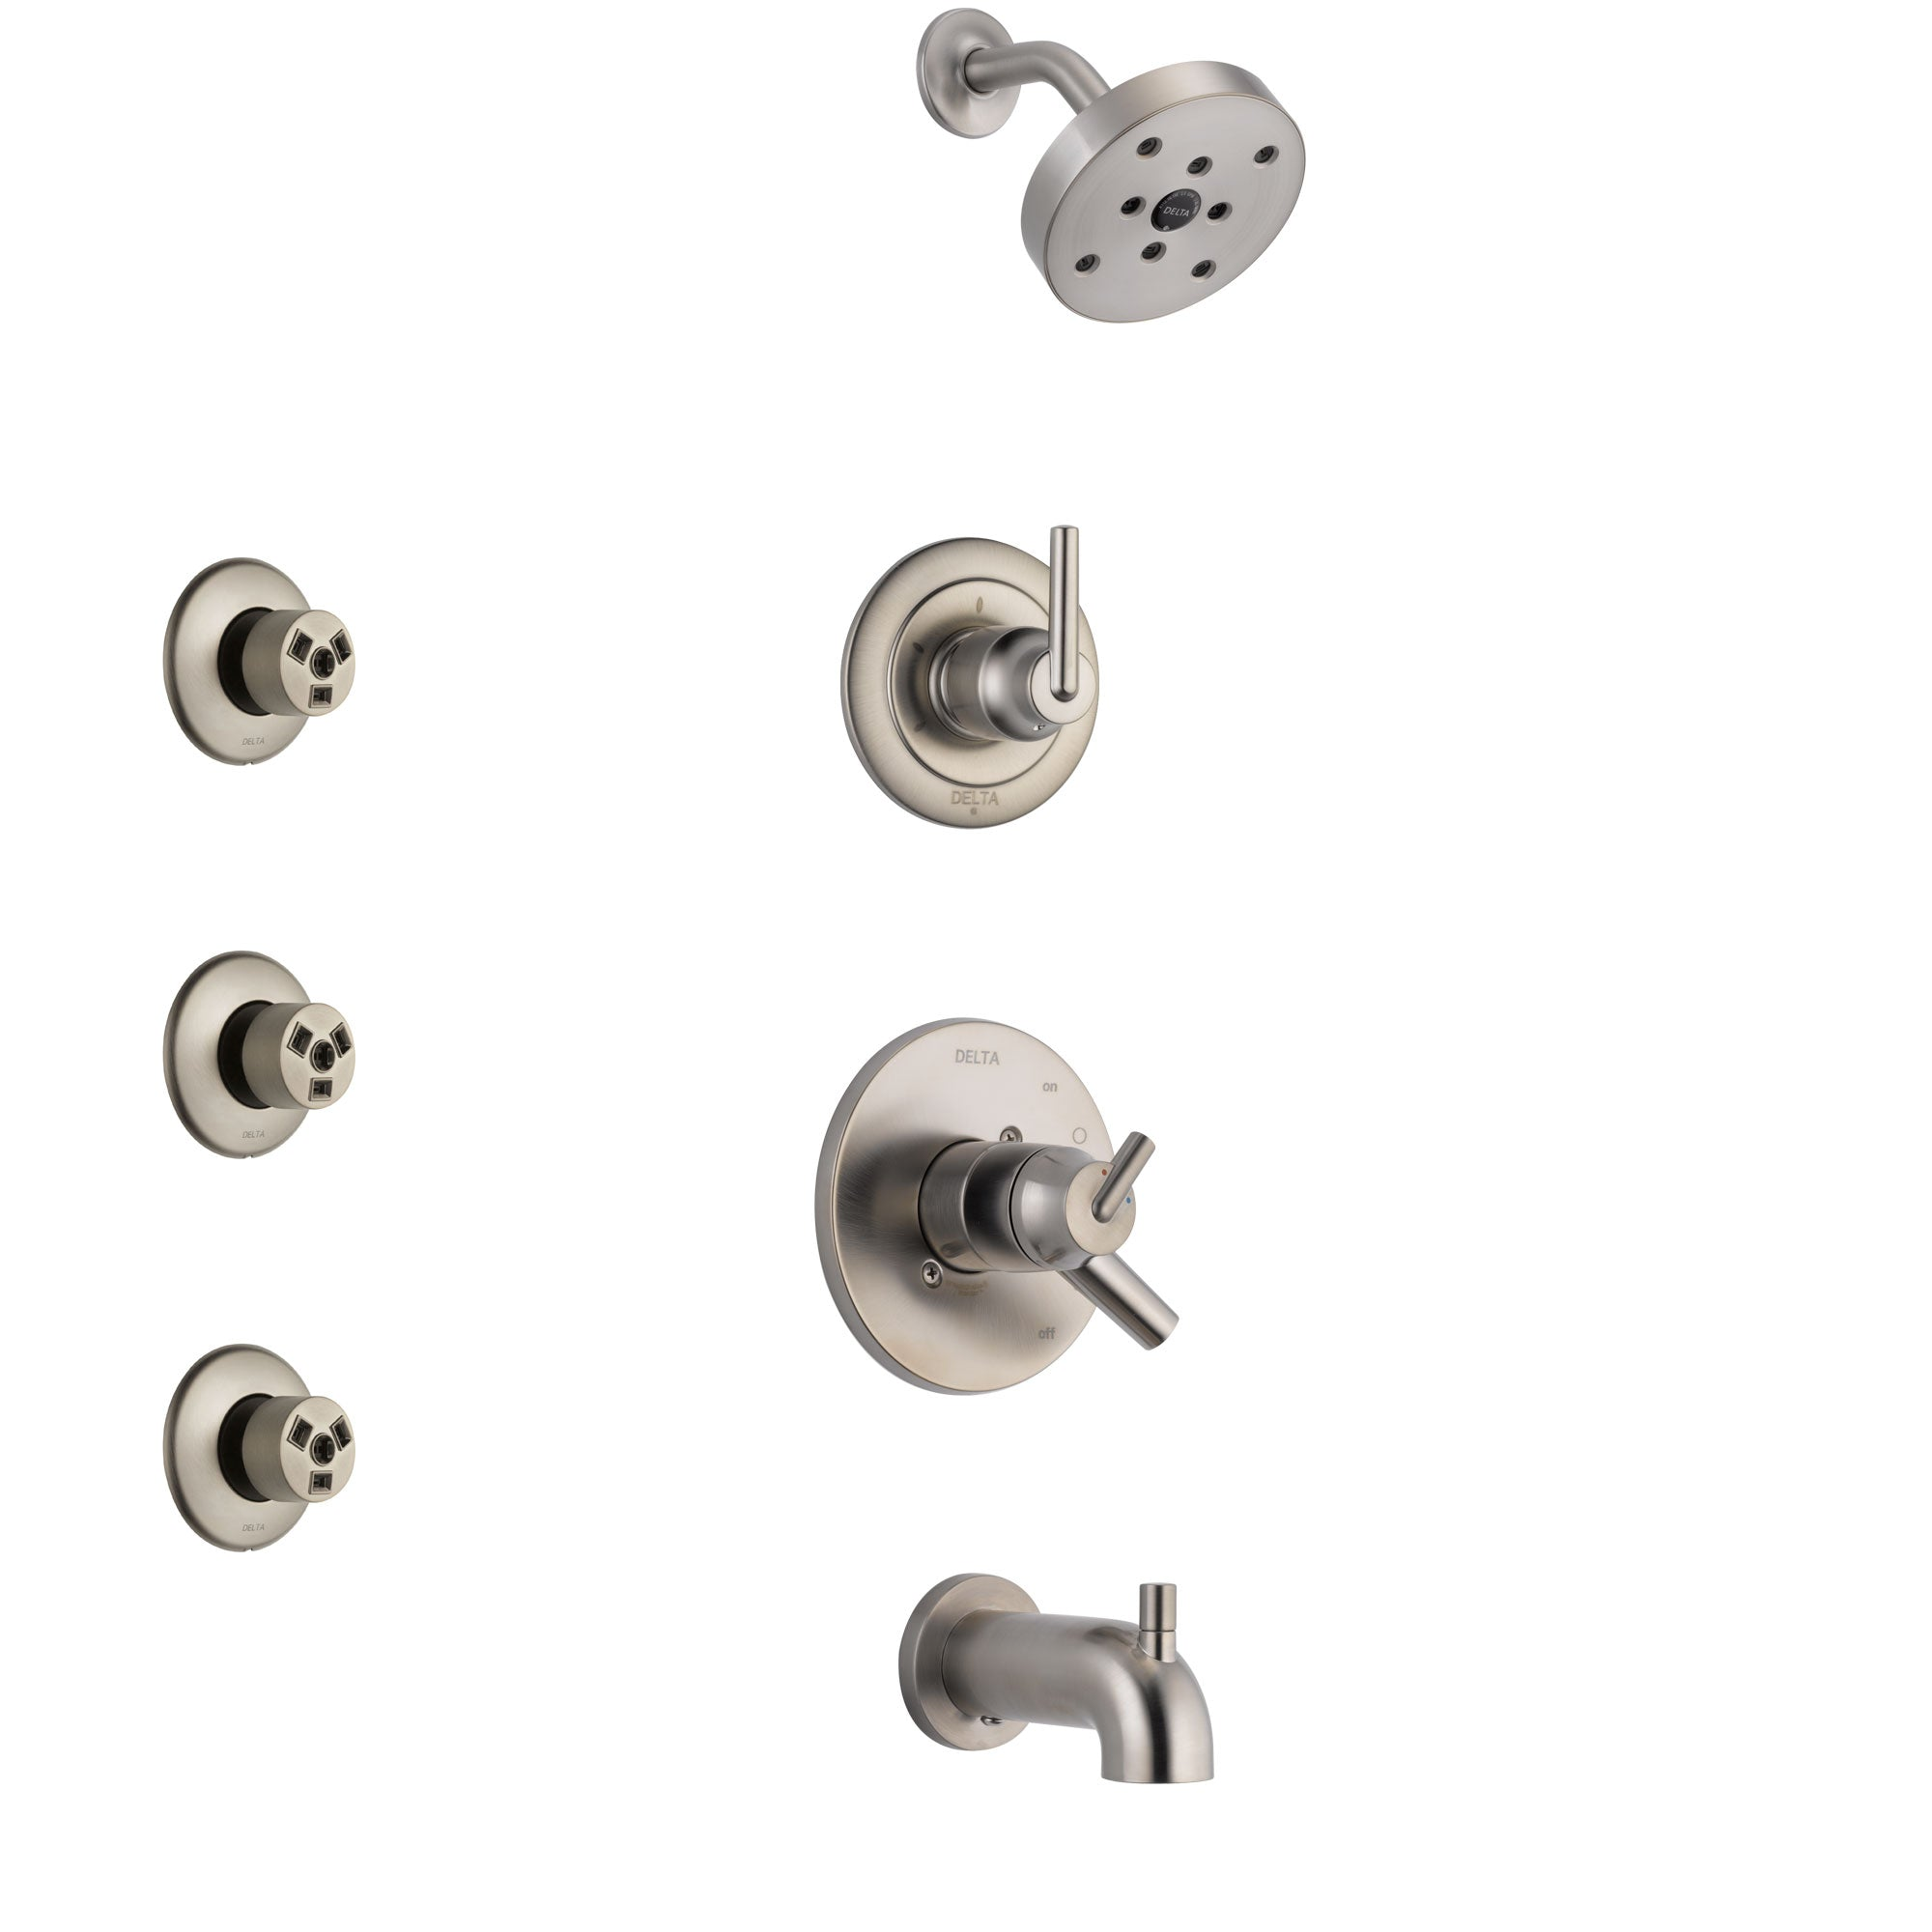 Delta Trinsic Stainless Steel Finish Tub and Shower System with Dual Control Handle, 3-Setting Diverter, Showerhead, and 3 Body Sprays SS17459SS1